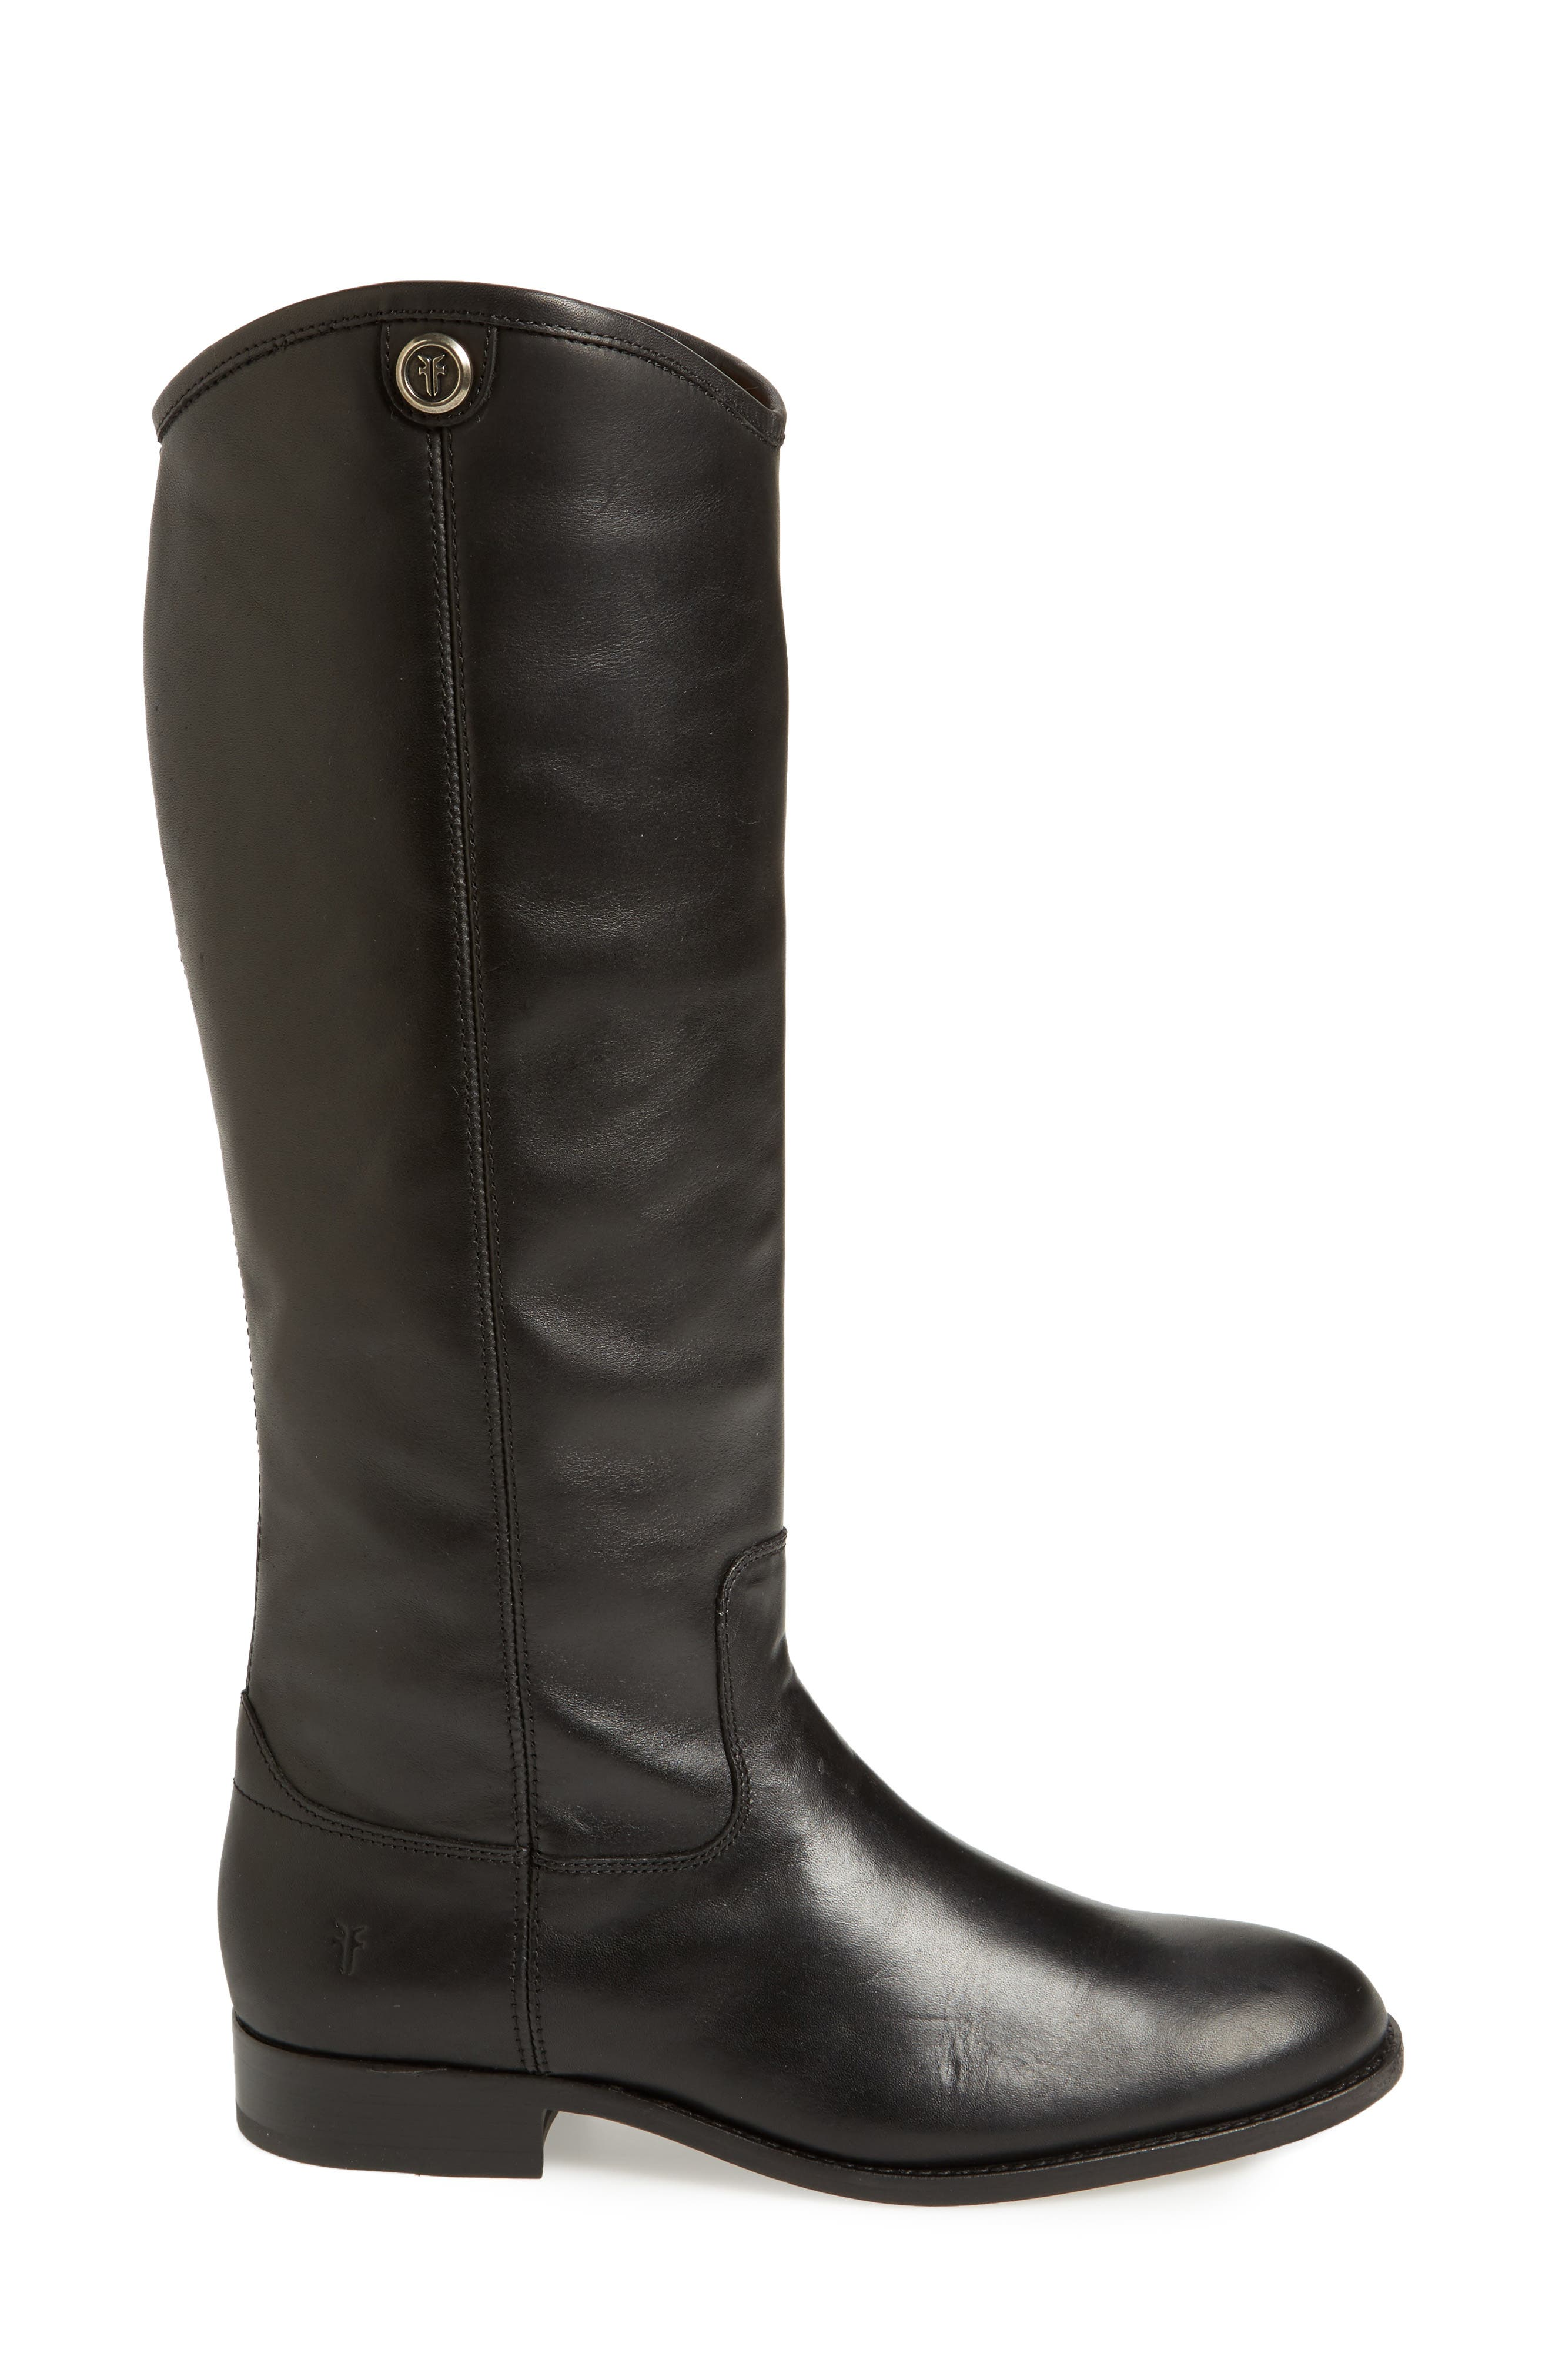 FRYE, Melissa Button 2 Knee High Boot, Alternate thumbnail 3, color, BLACK LEATHER